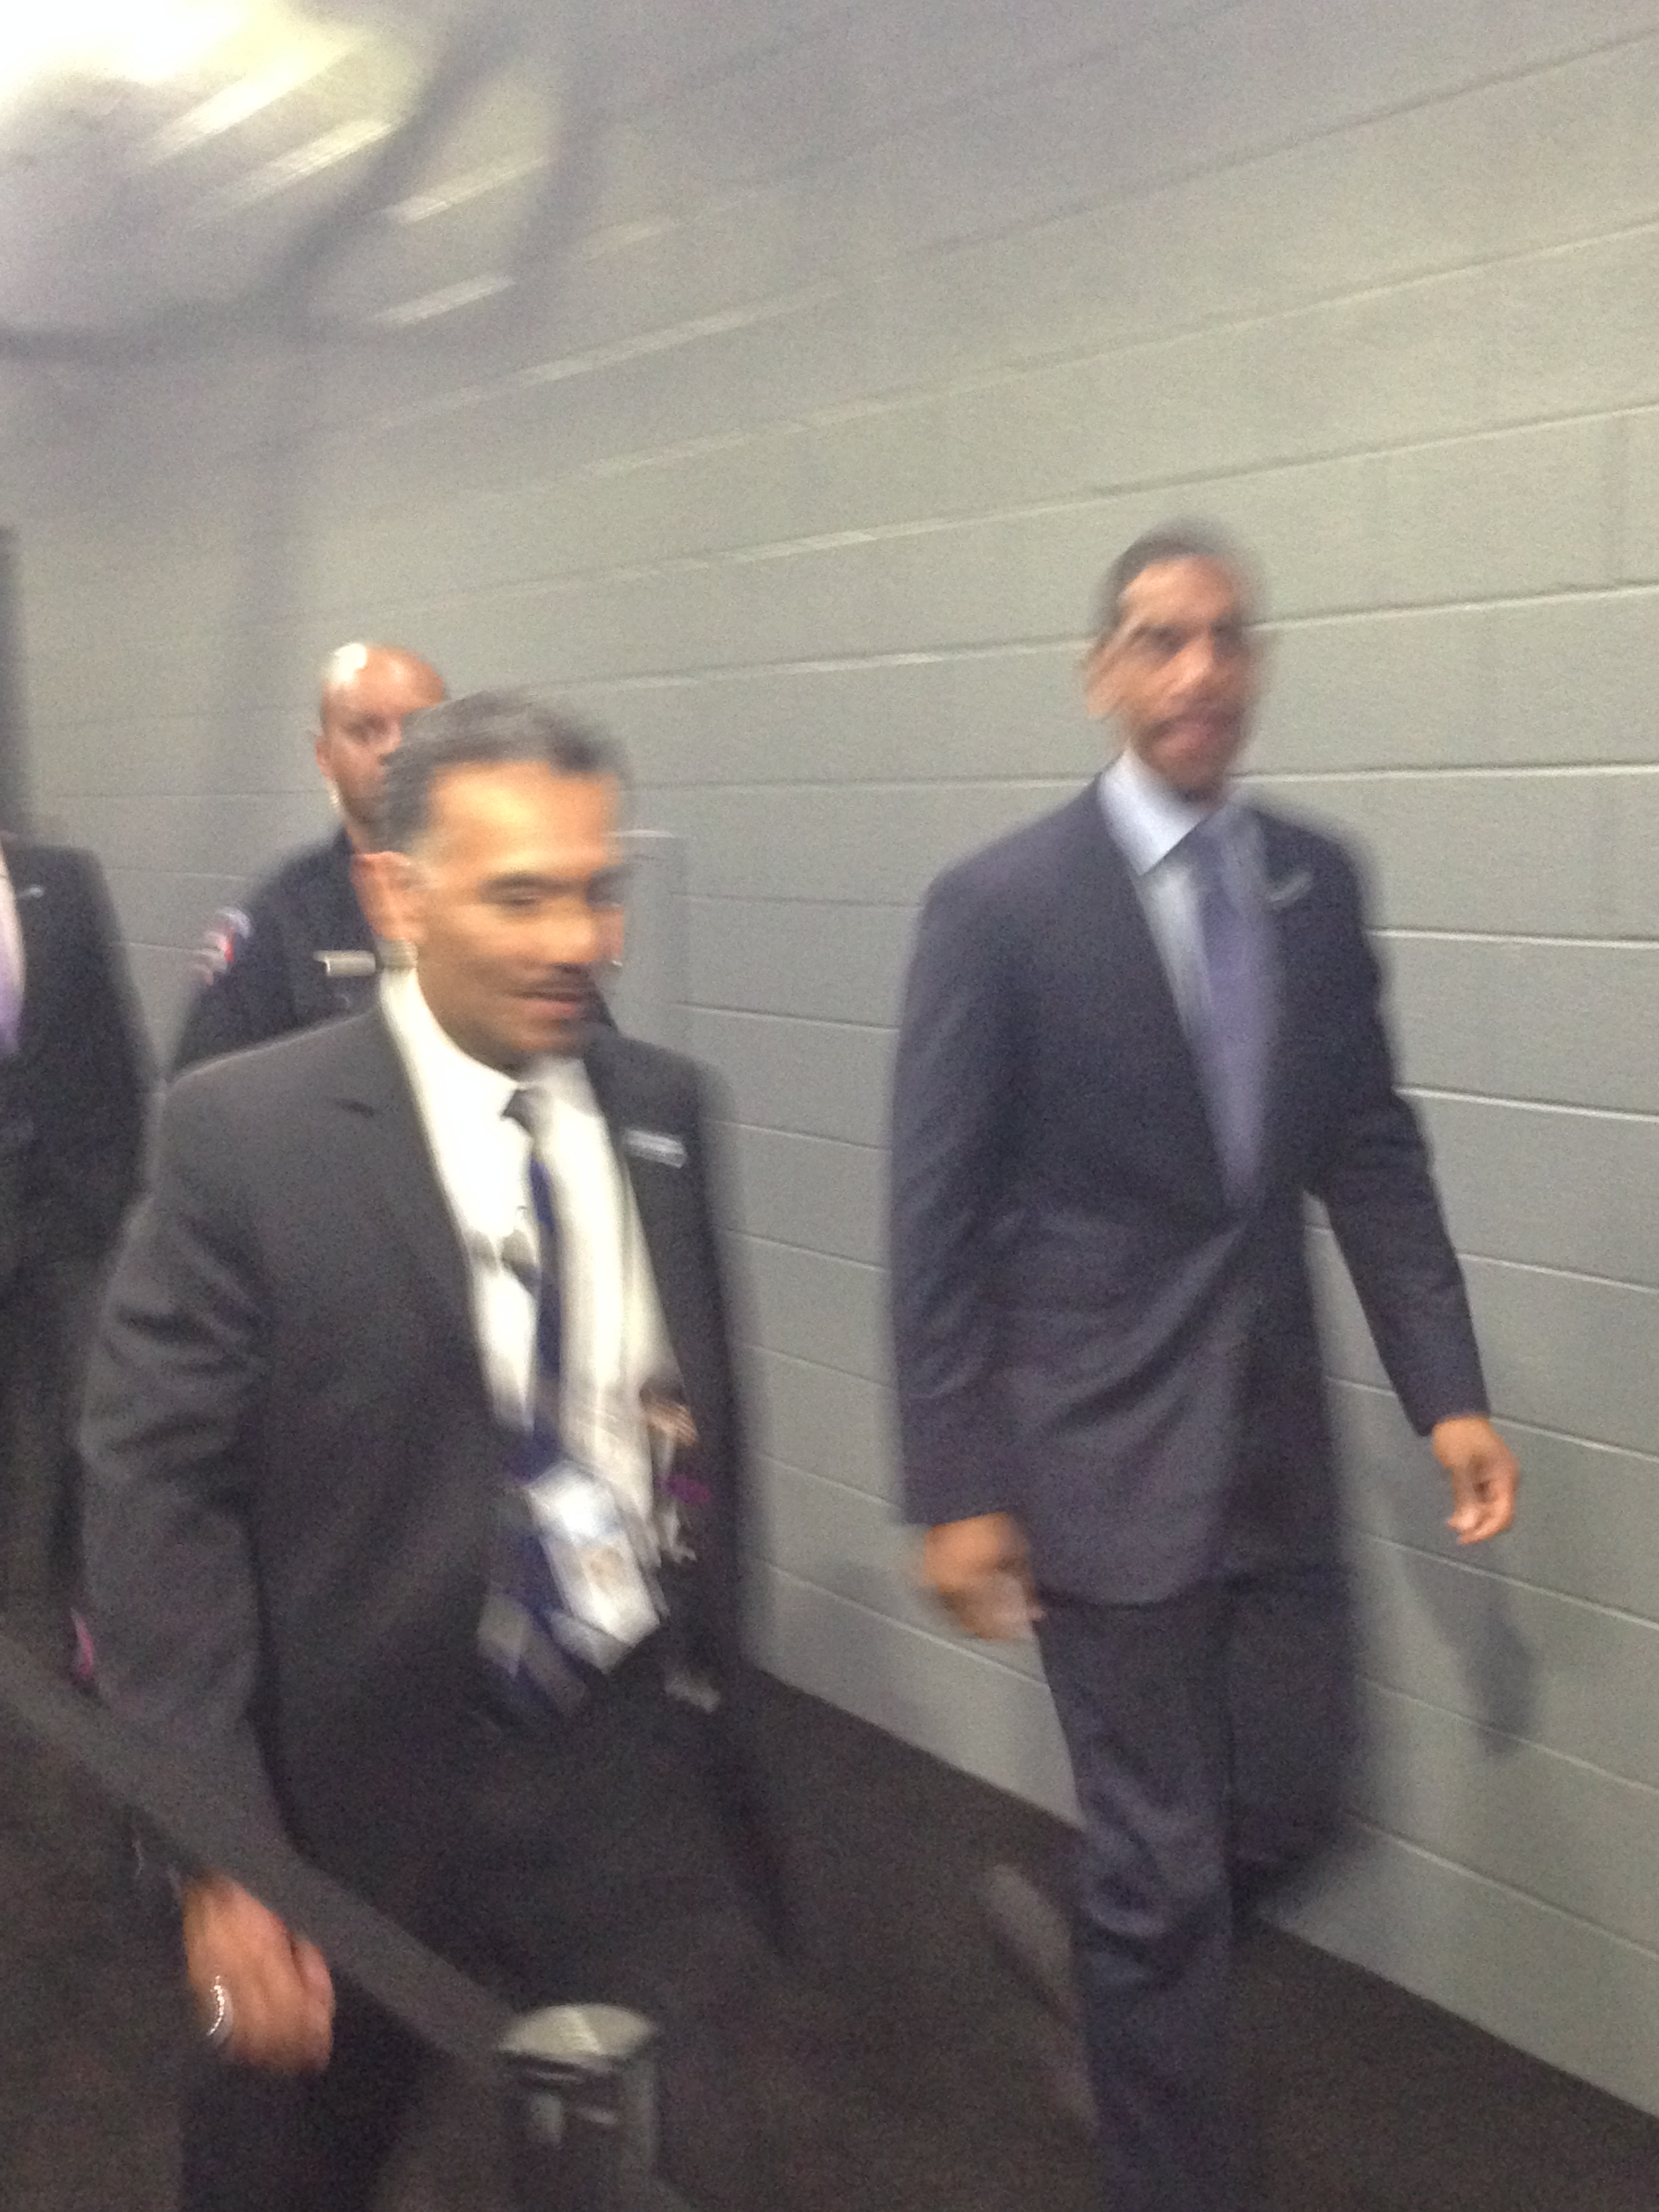 UConn head coach Kevin Ollie coming from locker room